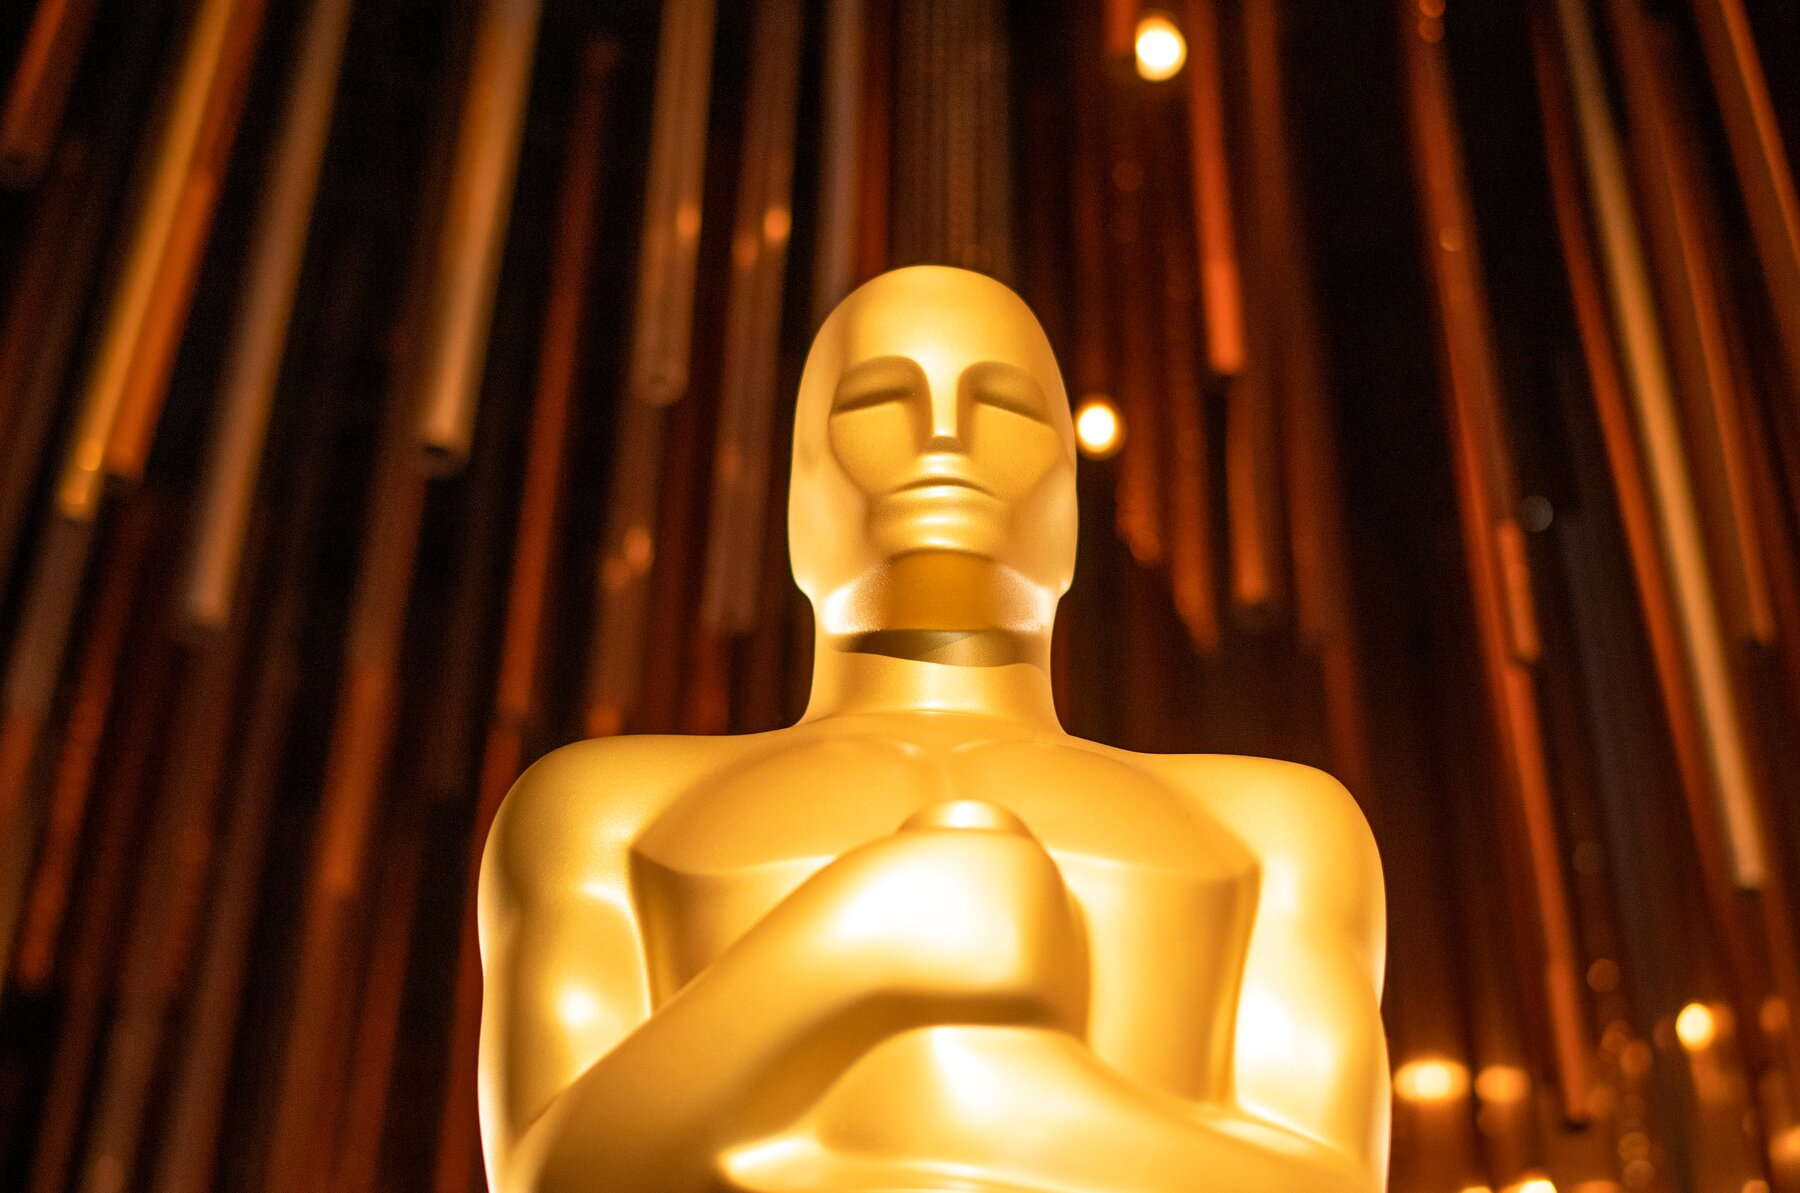 Winners Nominations Full list of Best Actor Actress Images